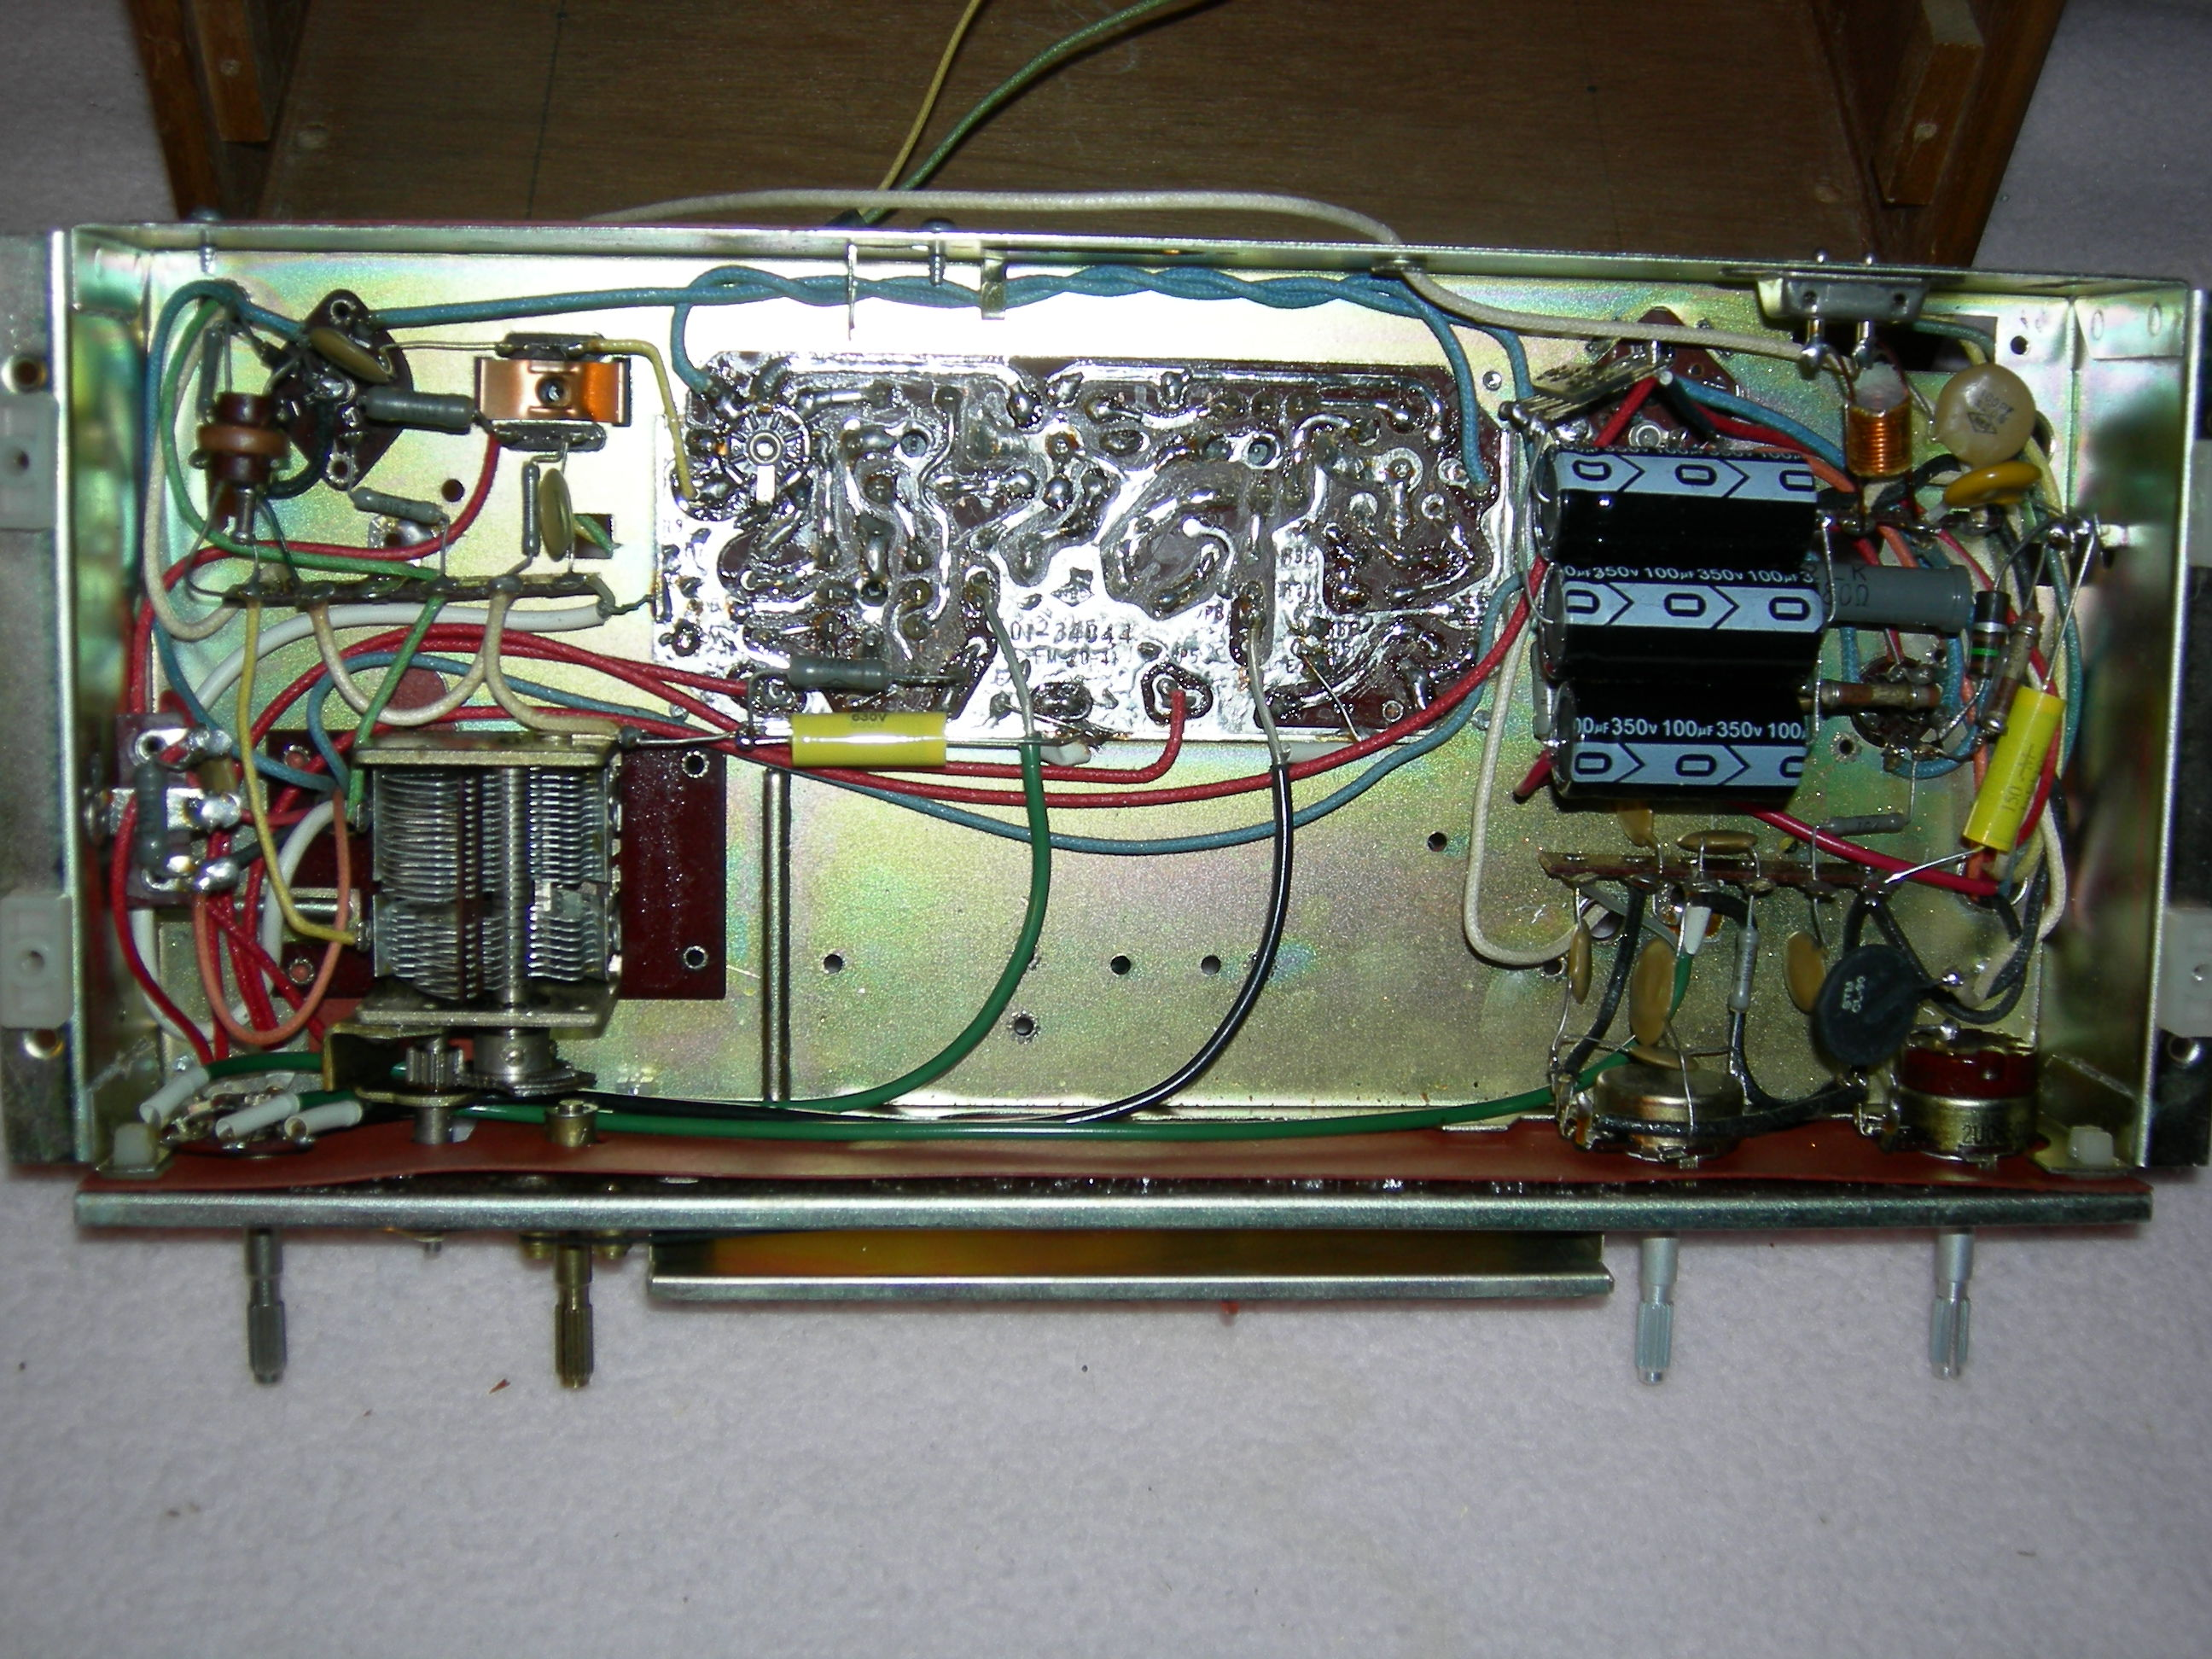 Magnavox FM040 Under Chassis Restored